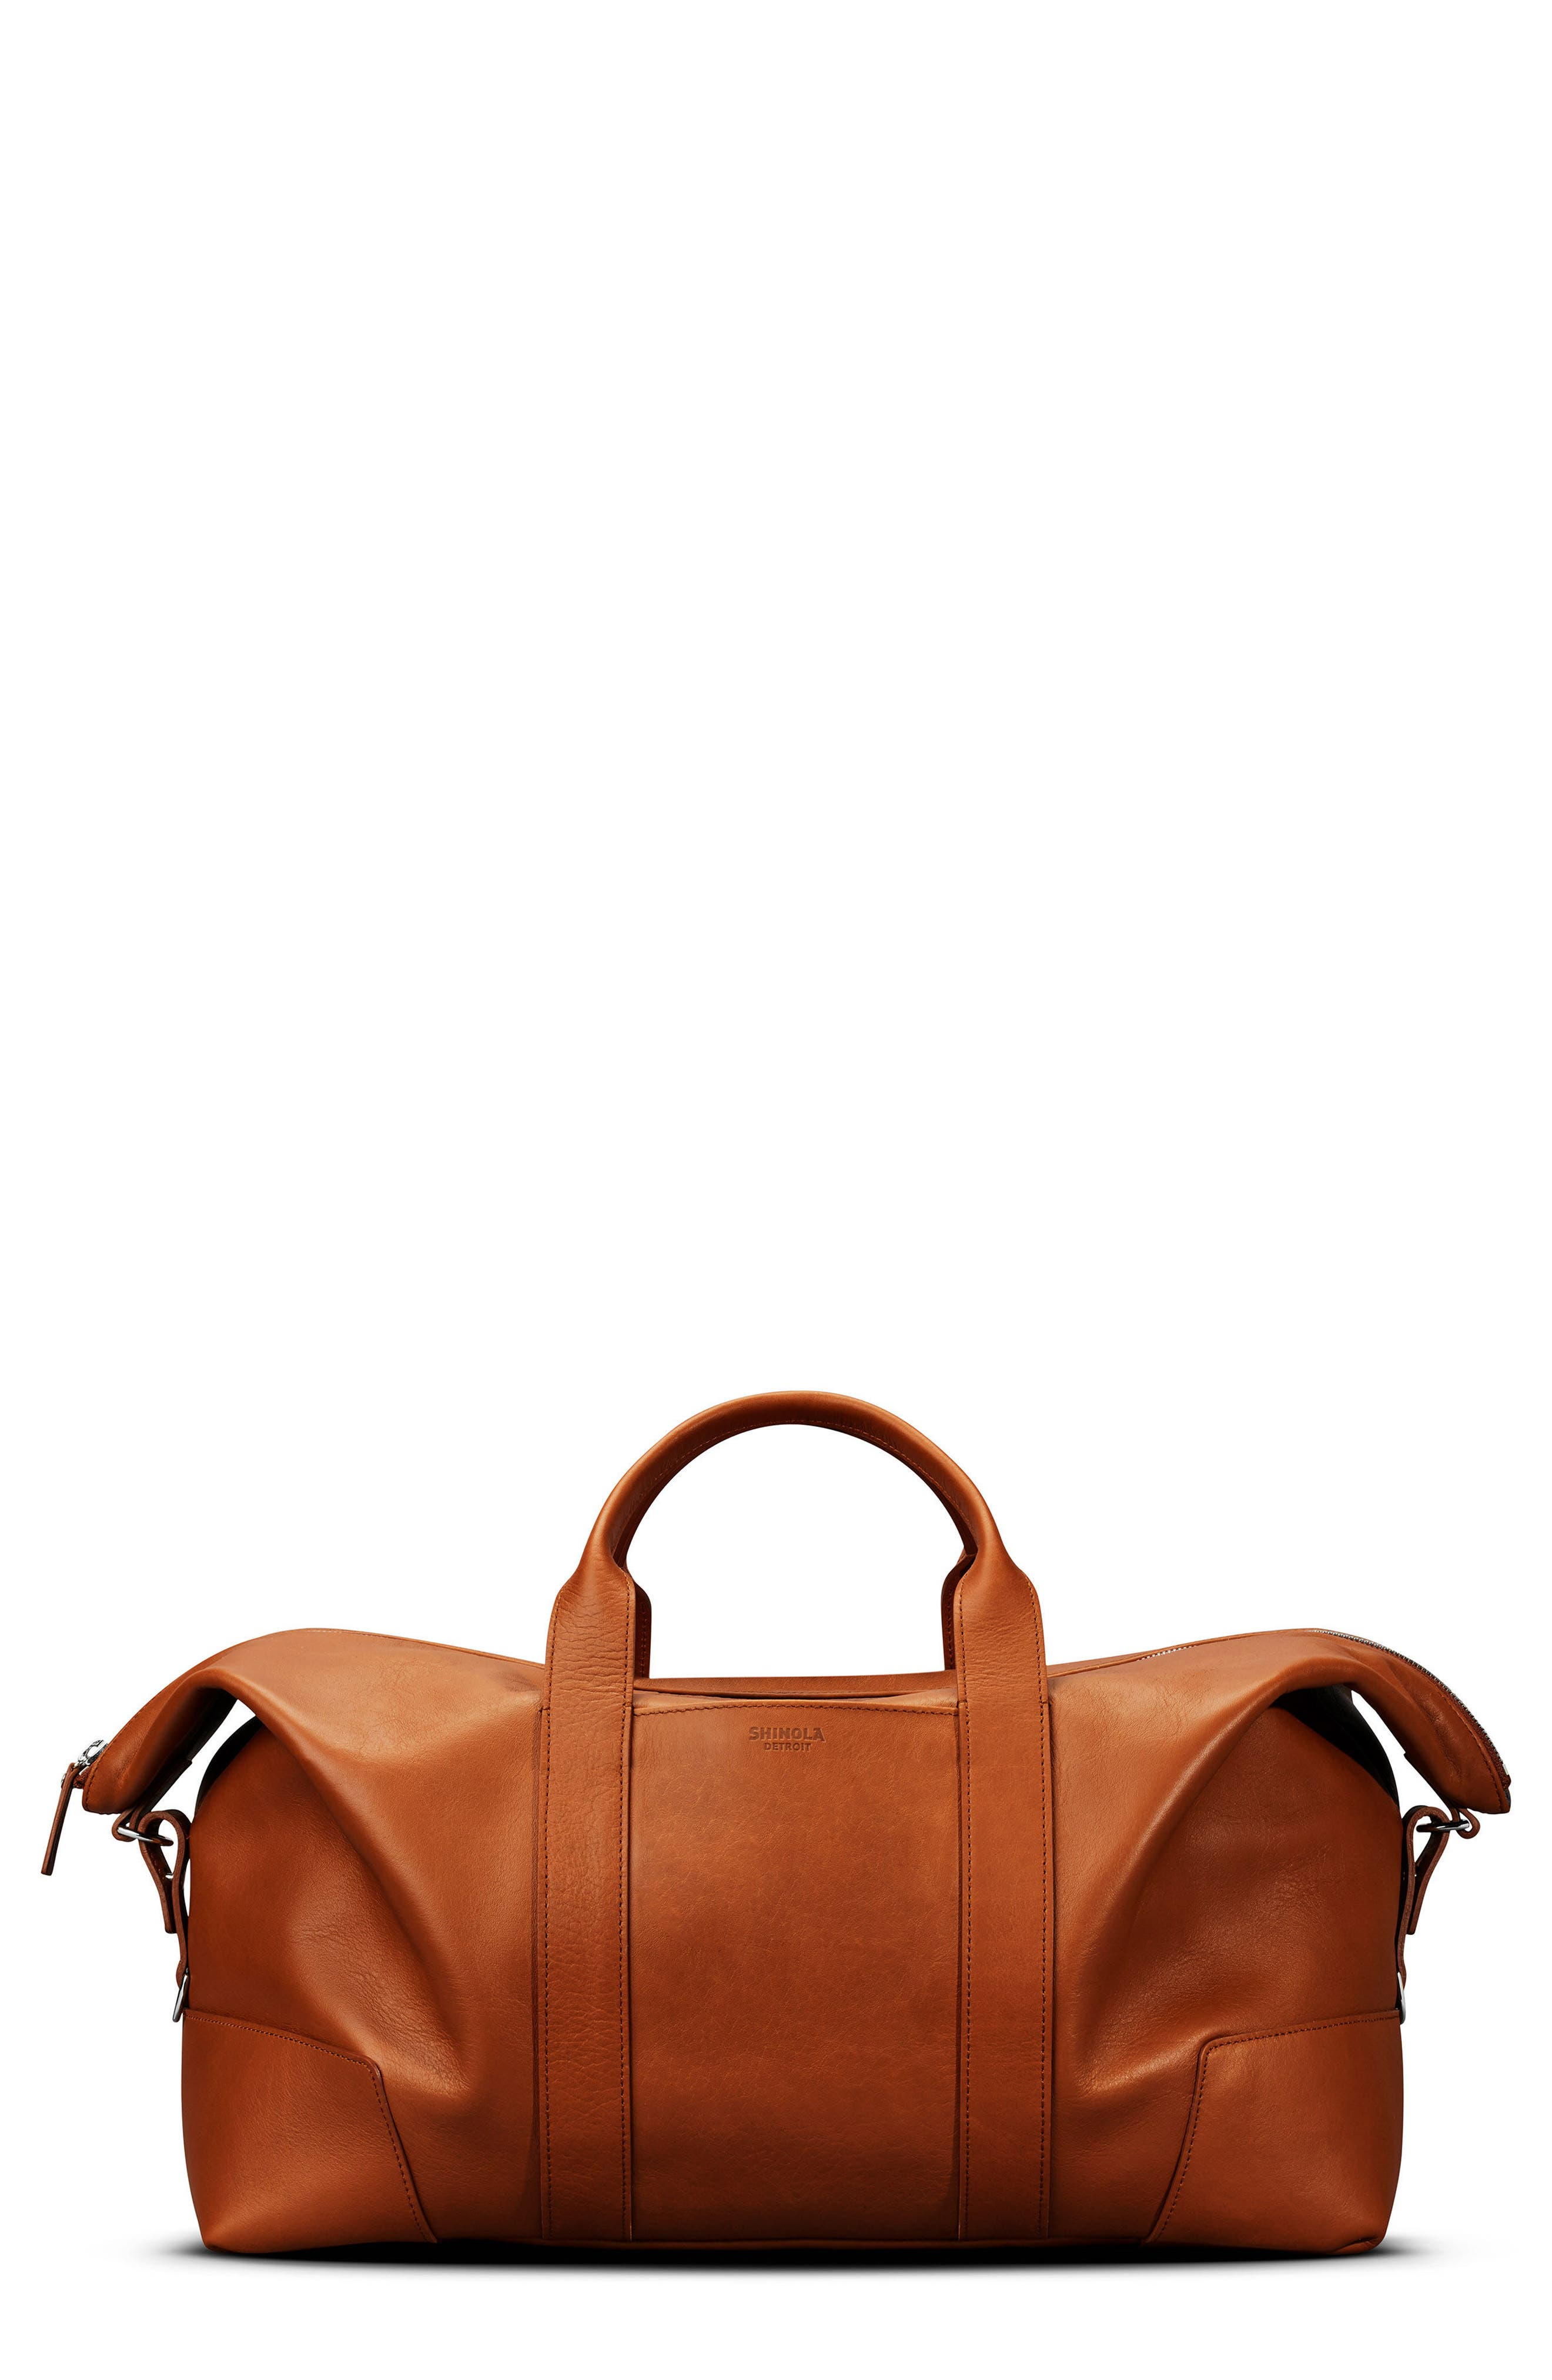 Alternate Image 1 Selected - Shinola Signature Leather Duffel Bag